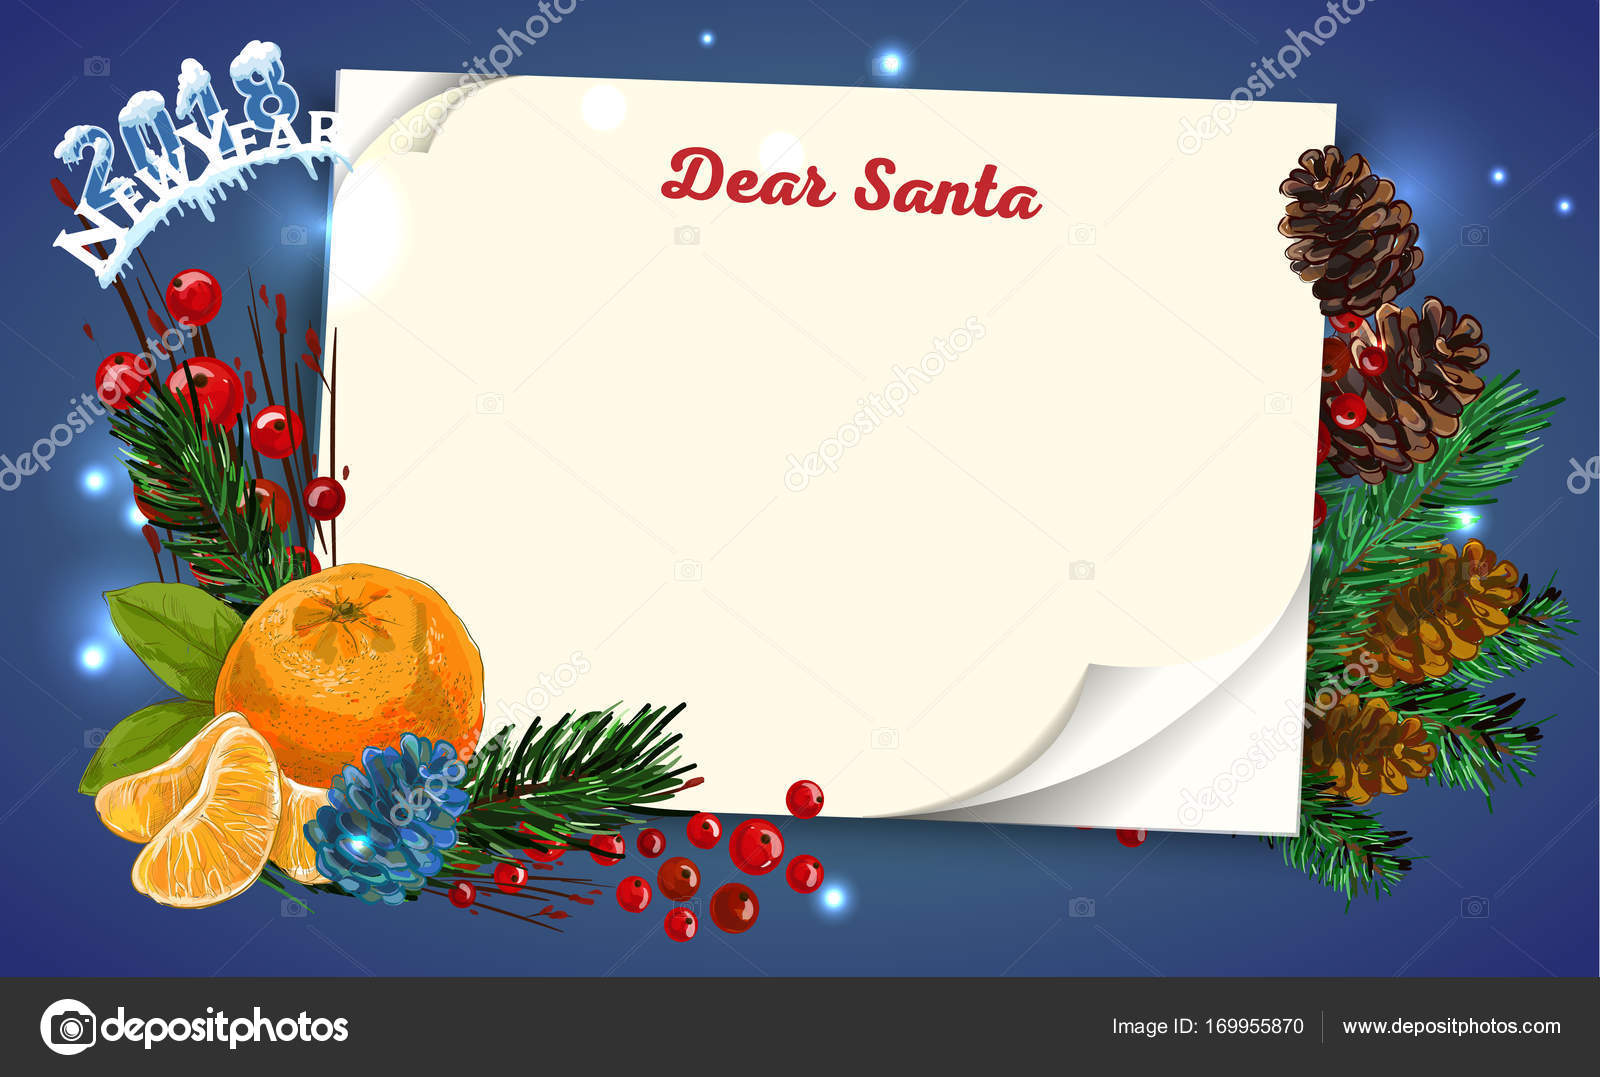 Christmas Letter From Santa Claus Template Stock Vector